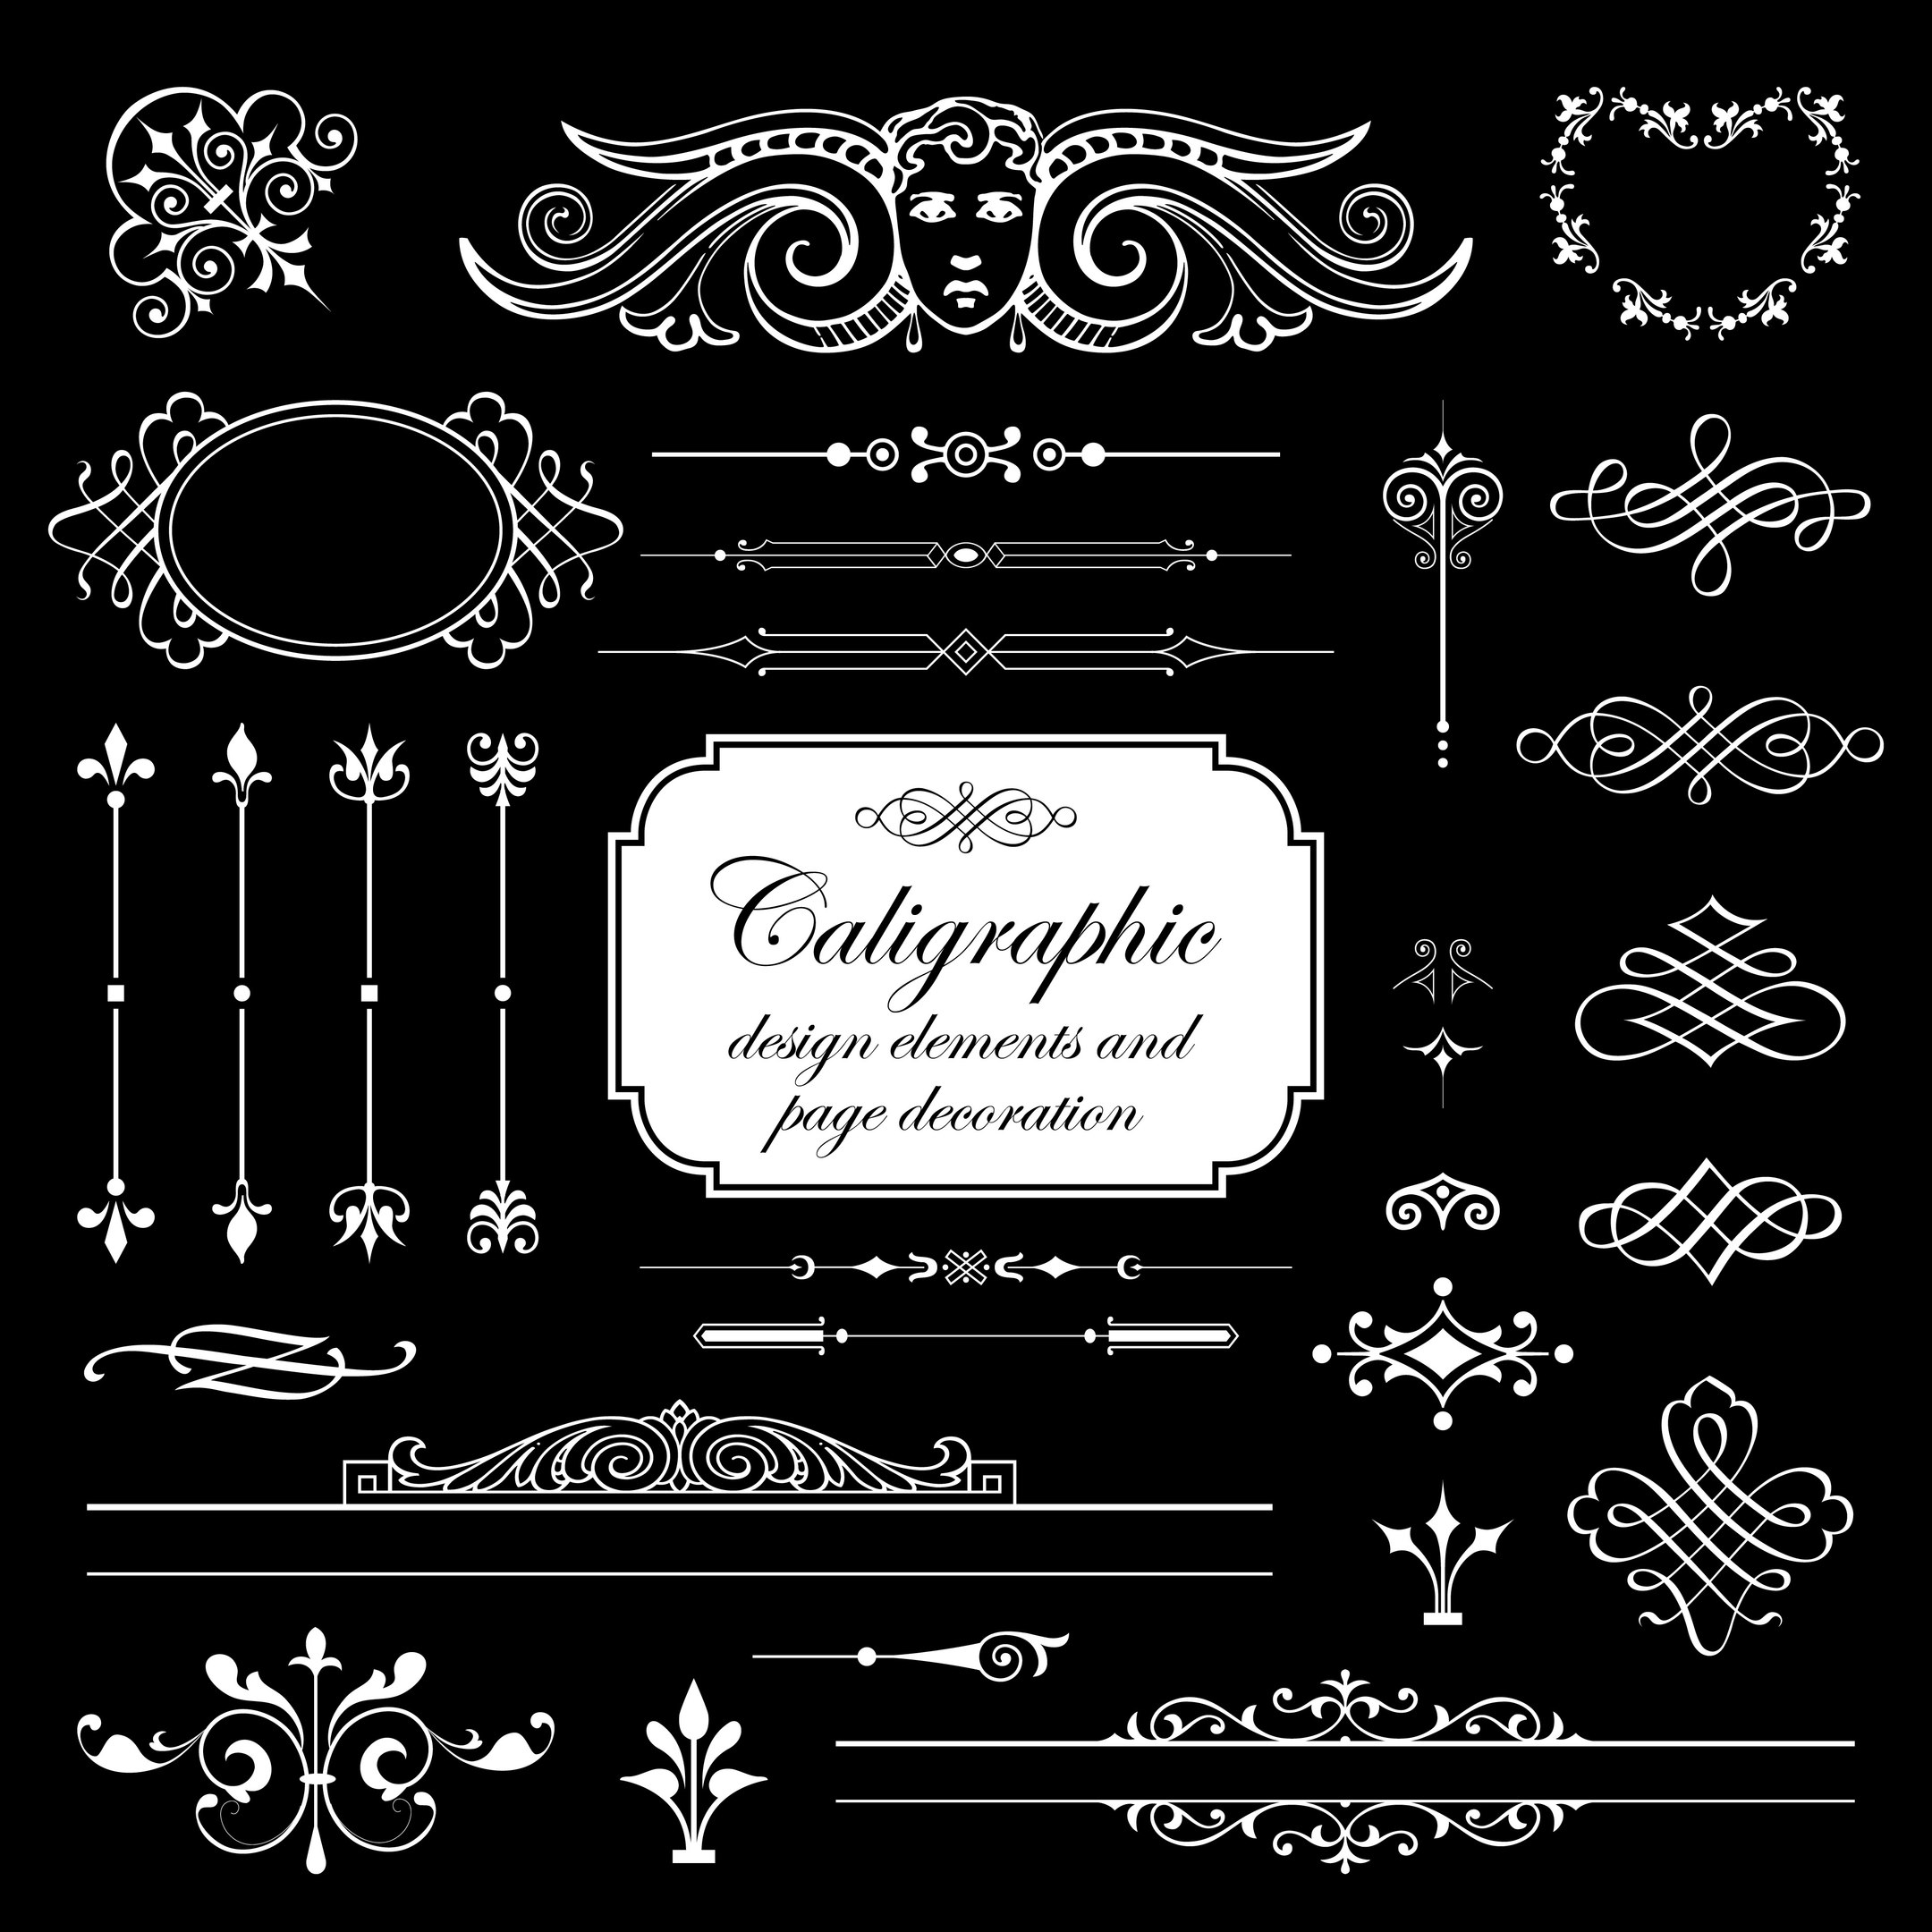 Calligraphic Design Elements And Page Decoration Vector Set Isolated On Black Background Free Vector